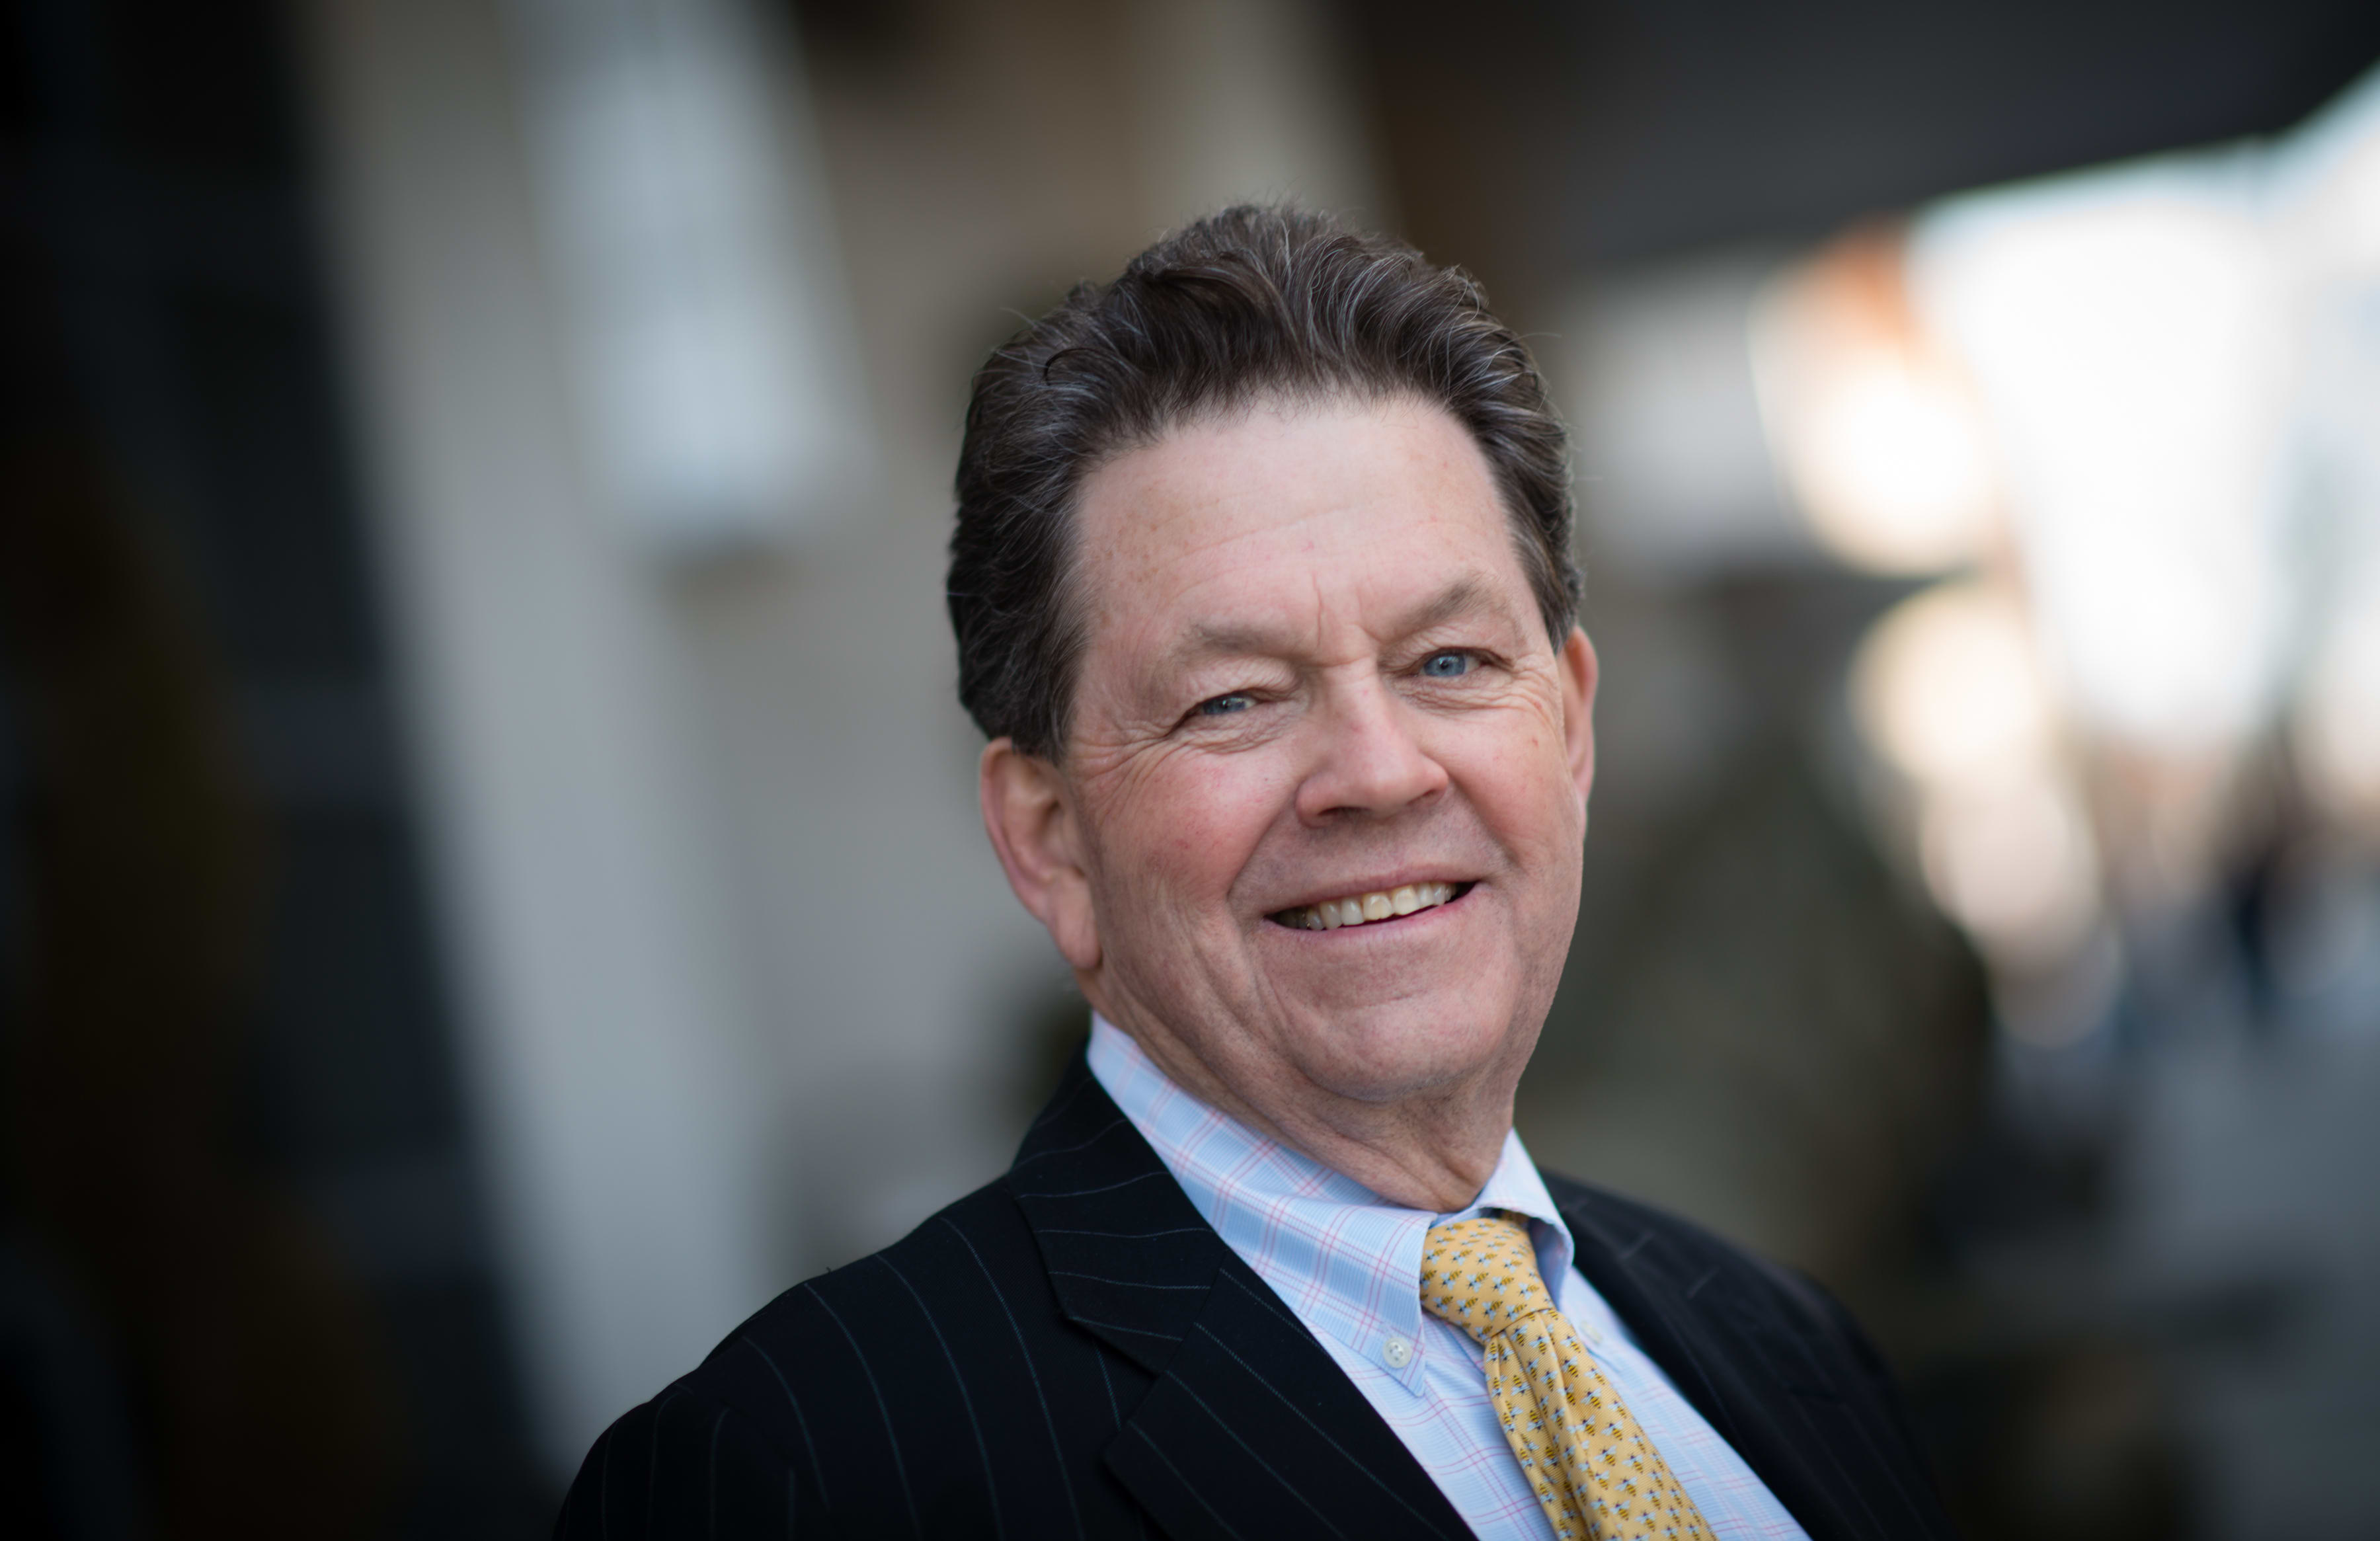 Art Laffer on negative rates: I'd borrow as much as I could if I didn't have to pay interest